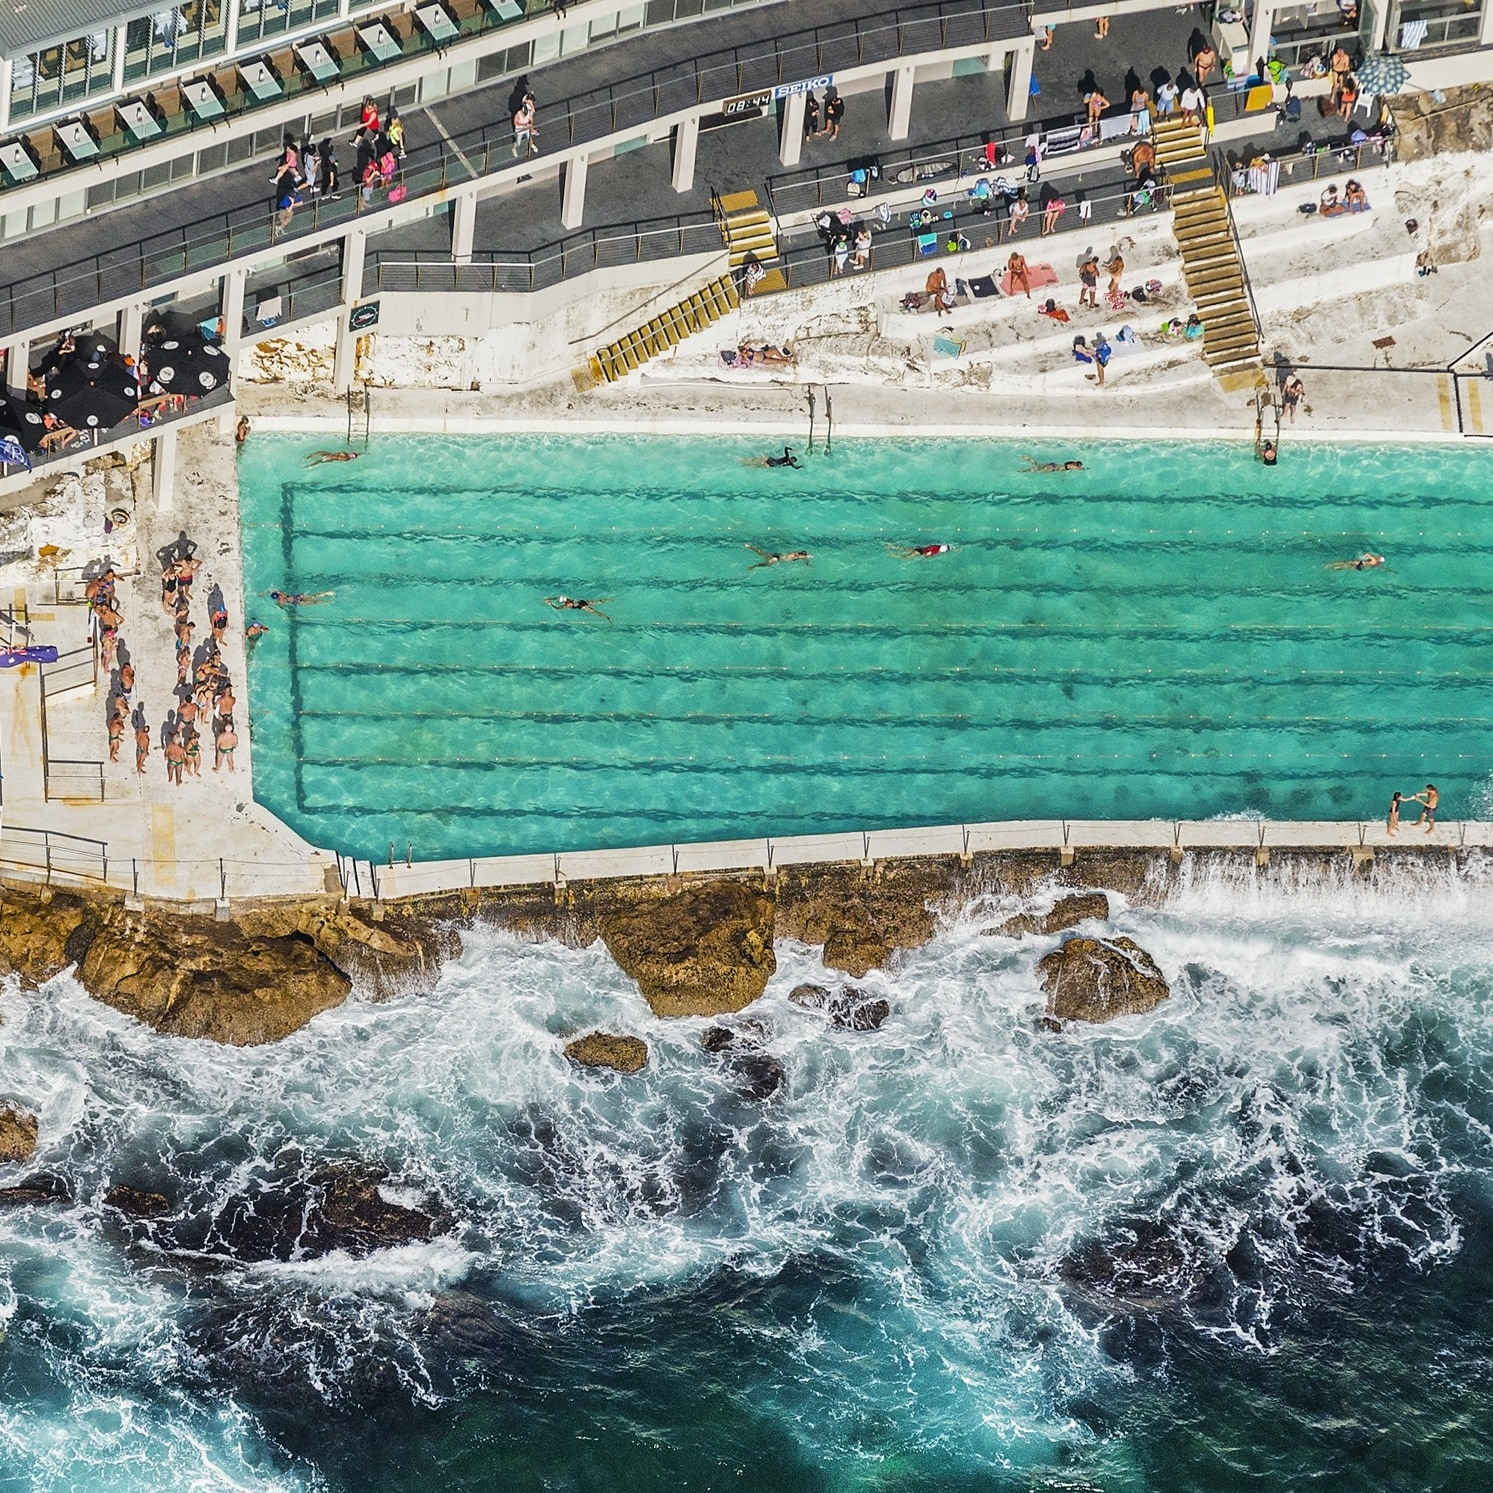 Bondi Icebergs, Sydney, New South Wales © DNSW